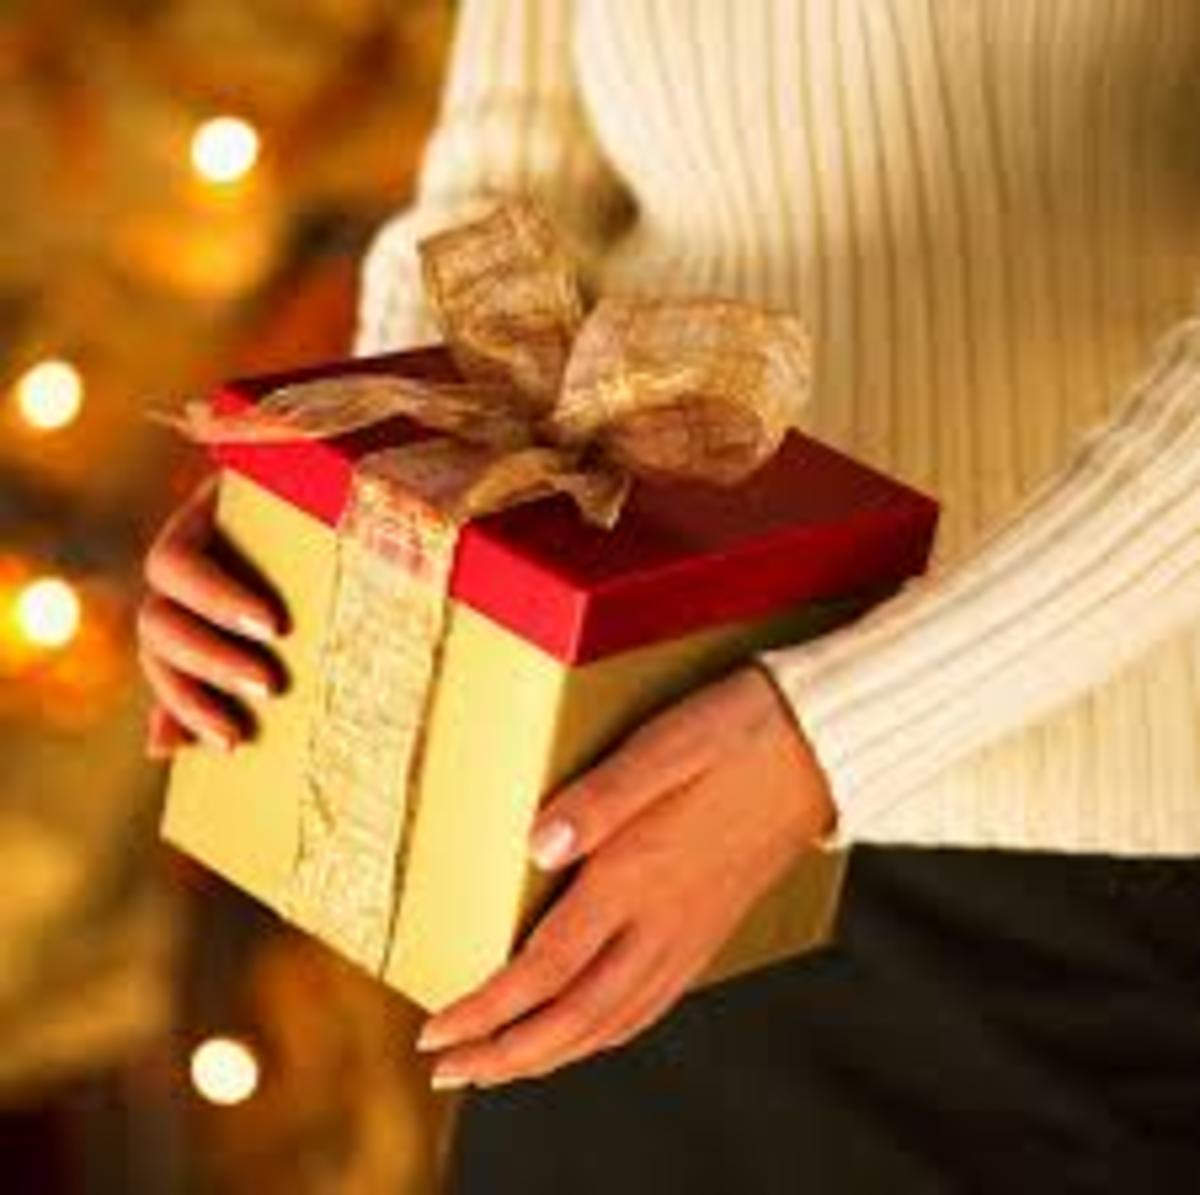 Christmas eve presents a traditional task of giving gifts